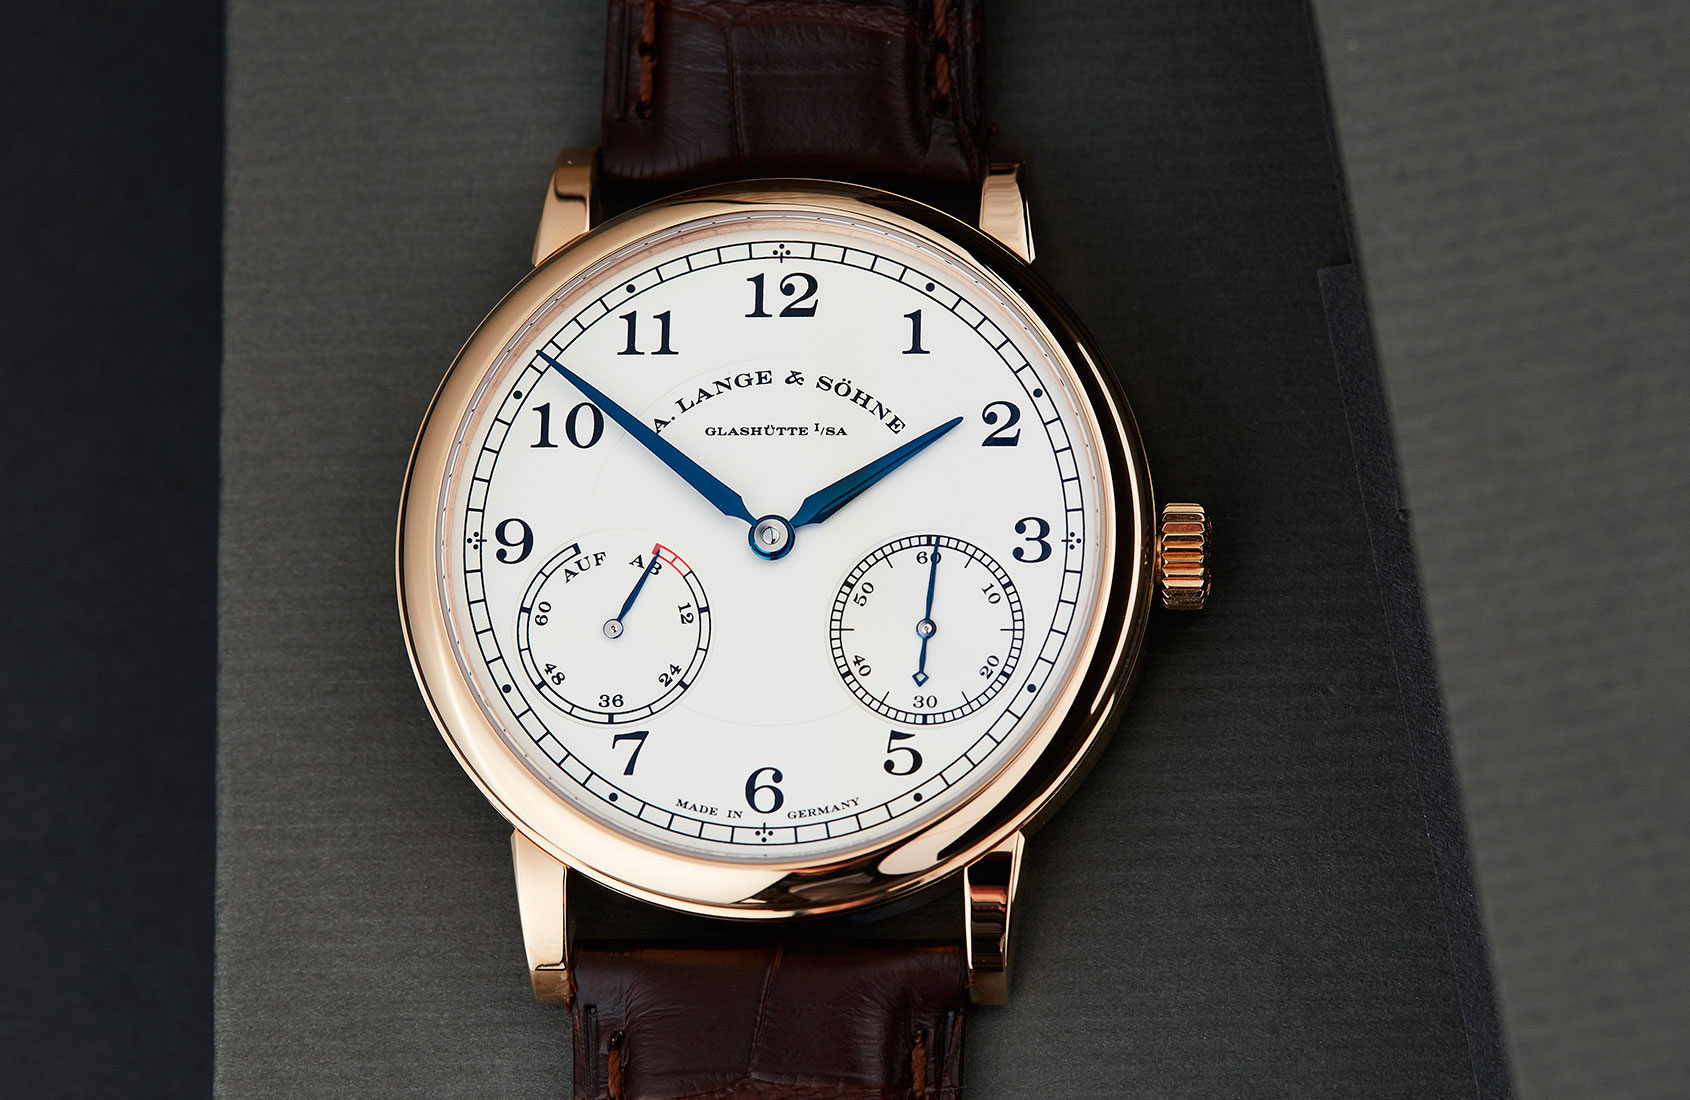 No downsides to the A. Lange & Söhne 1815 Up/Down